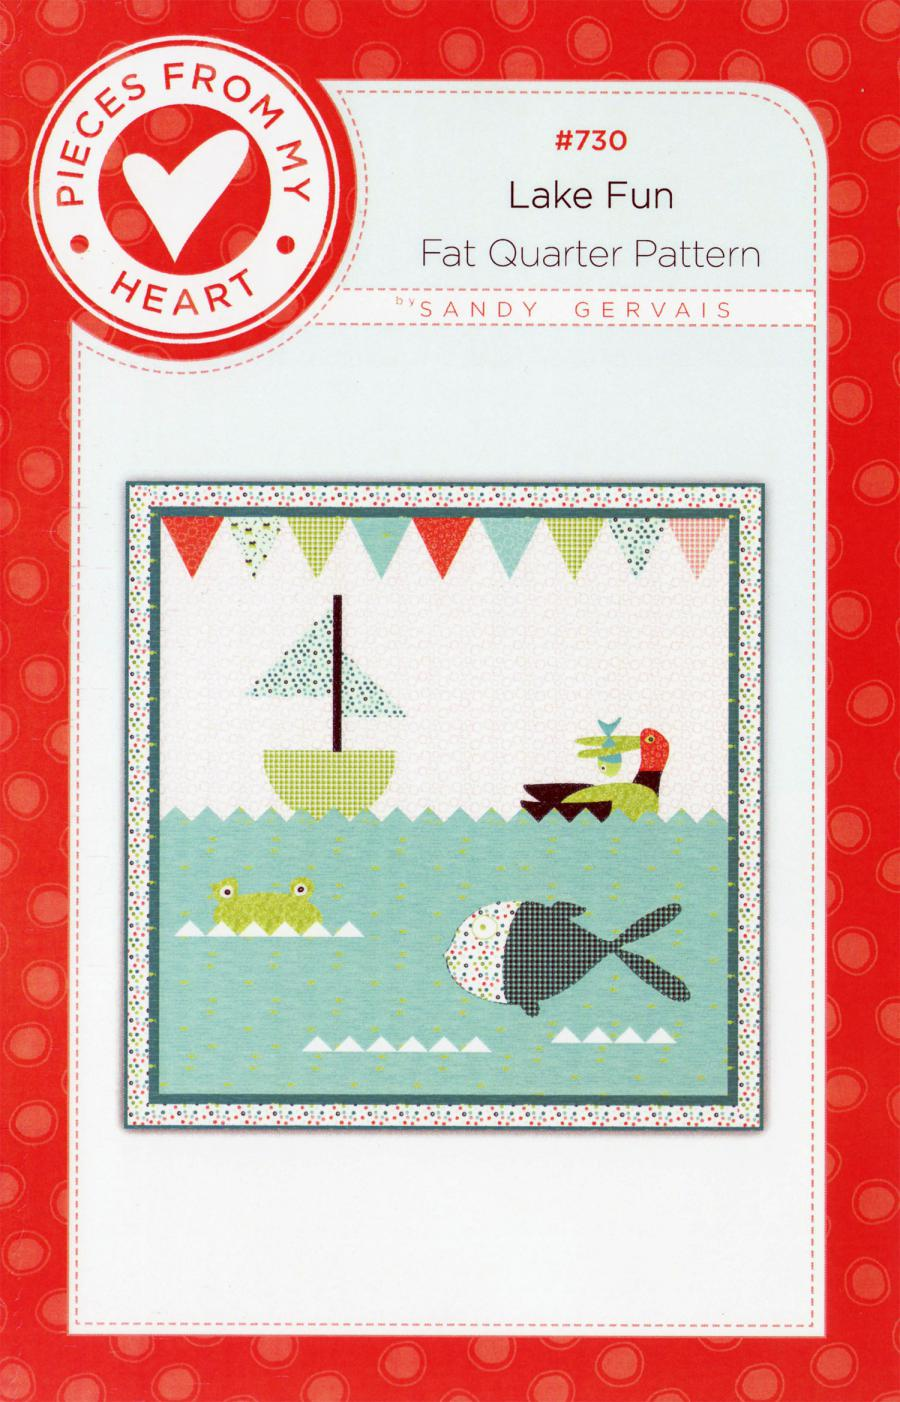 CLOSEOUT...Lake Fun Quilt Sewing Pattern from Pieces From My Heart